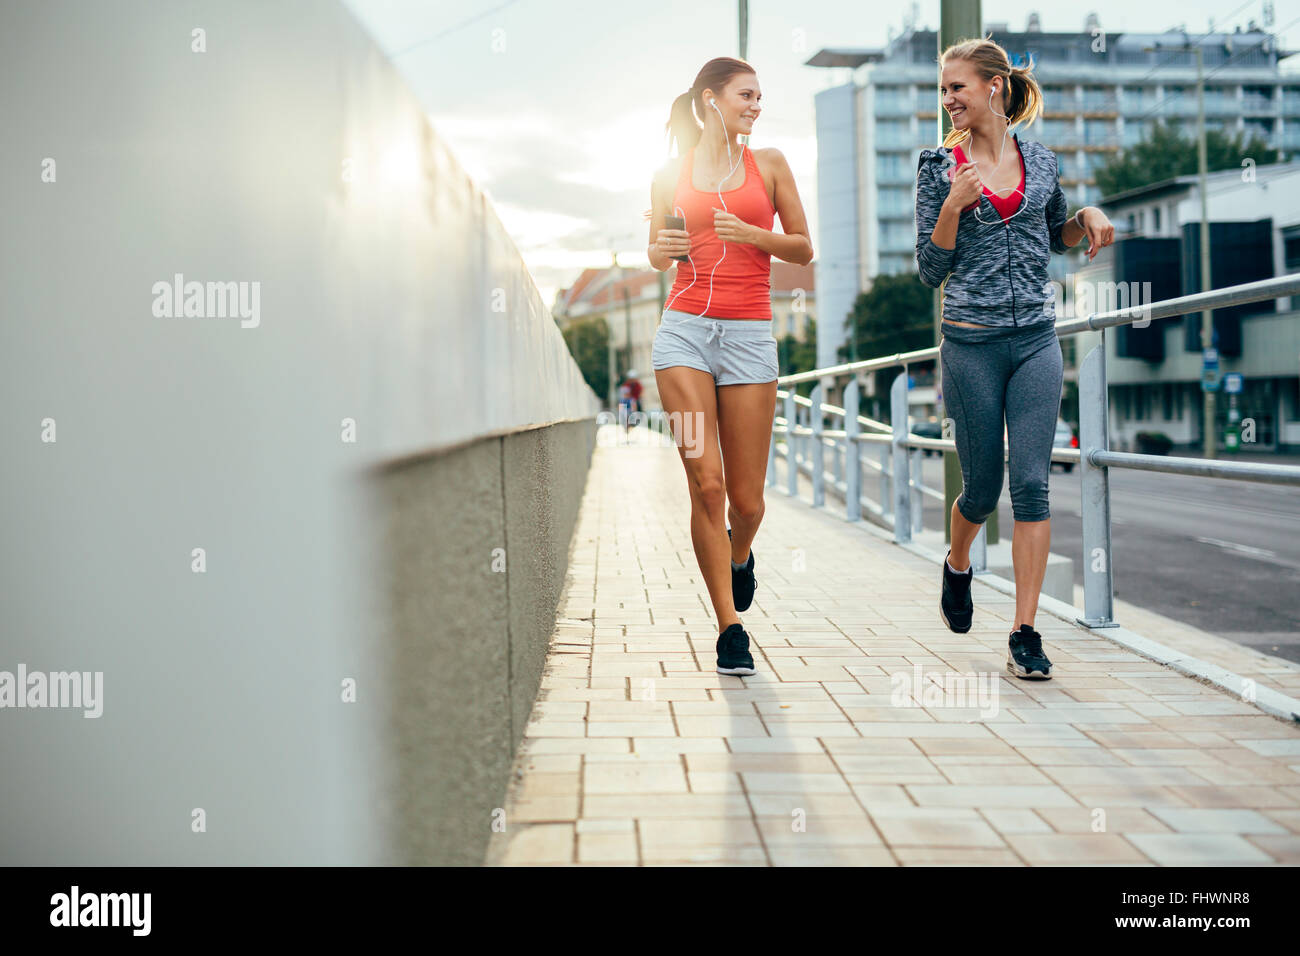 Beautiful women jogging in city while sun is setting down - Stock Image